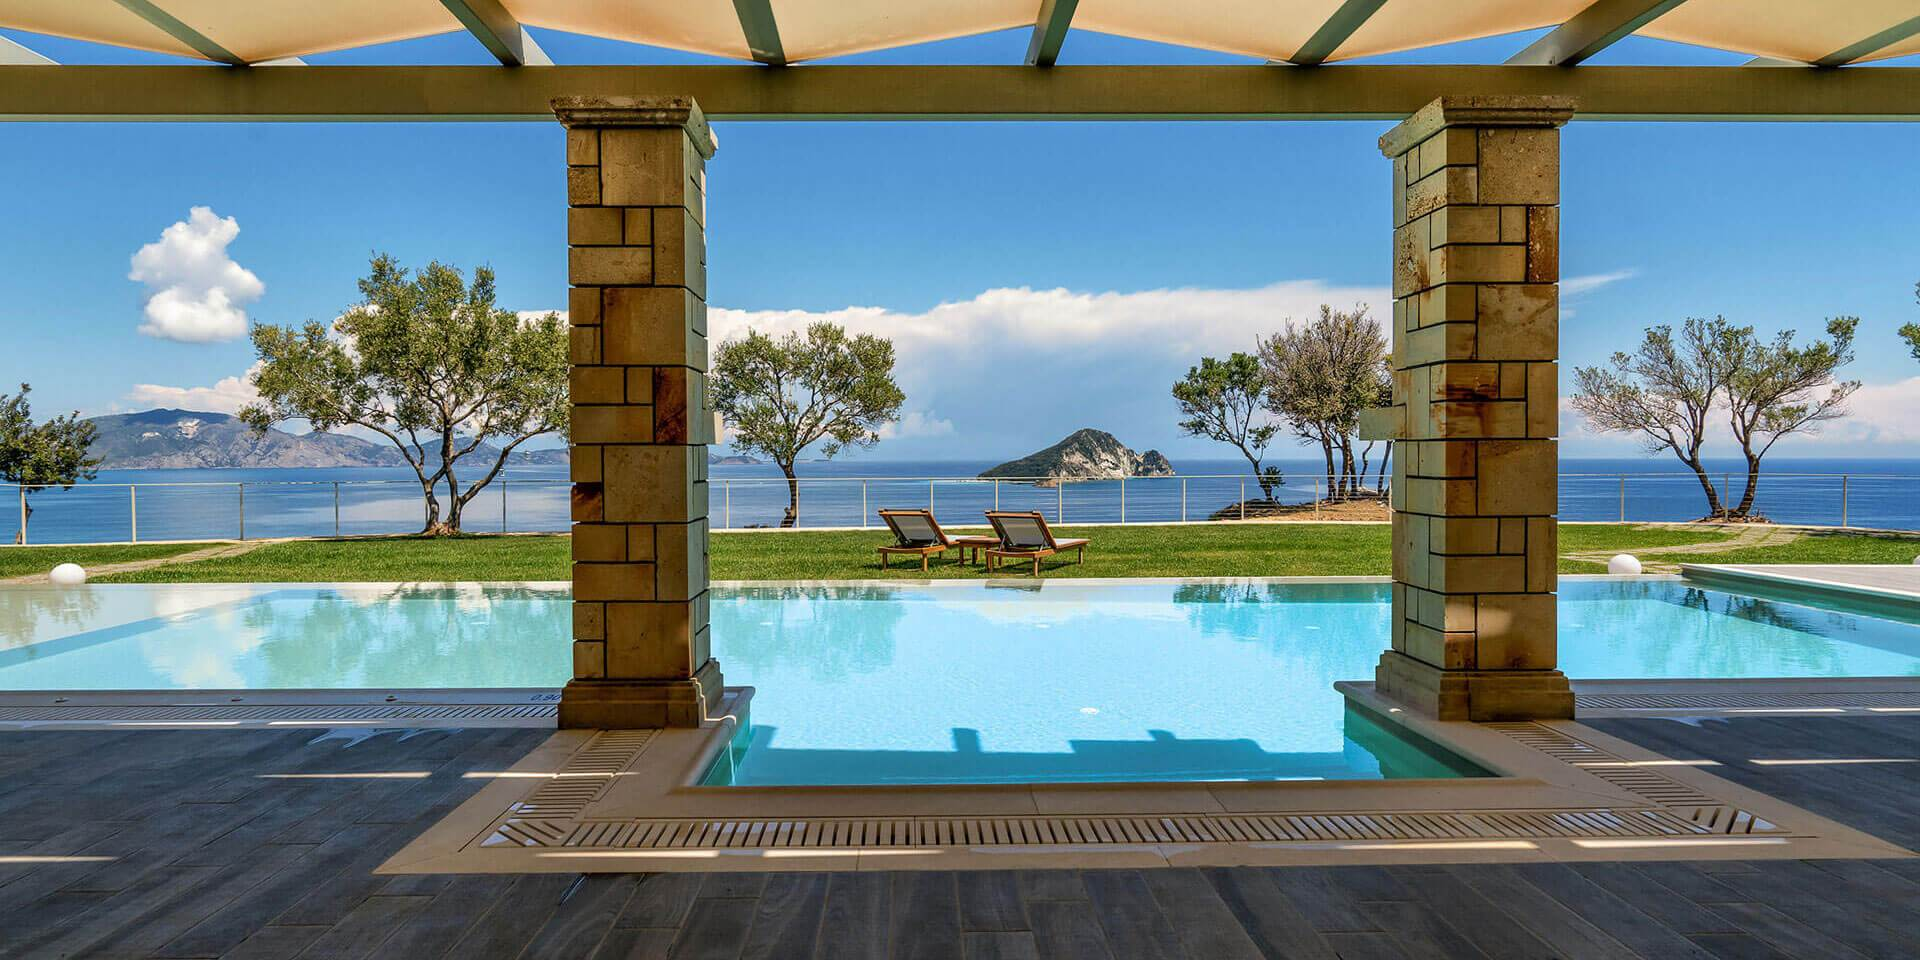 Ferienhaus Mit Pool Zakynthos Artina Private Pool Luxury Villas In Zakynthos Zante Greece